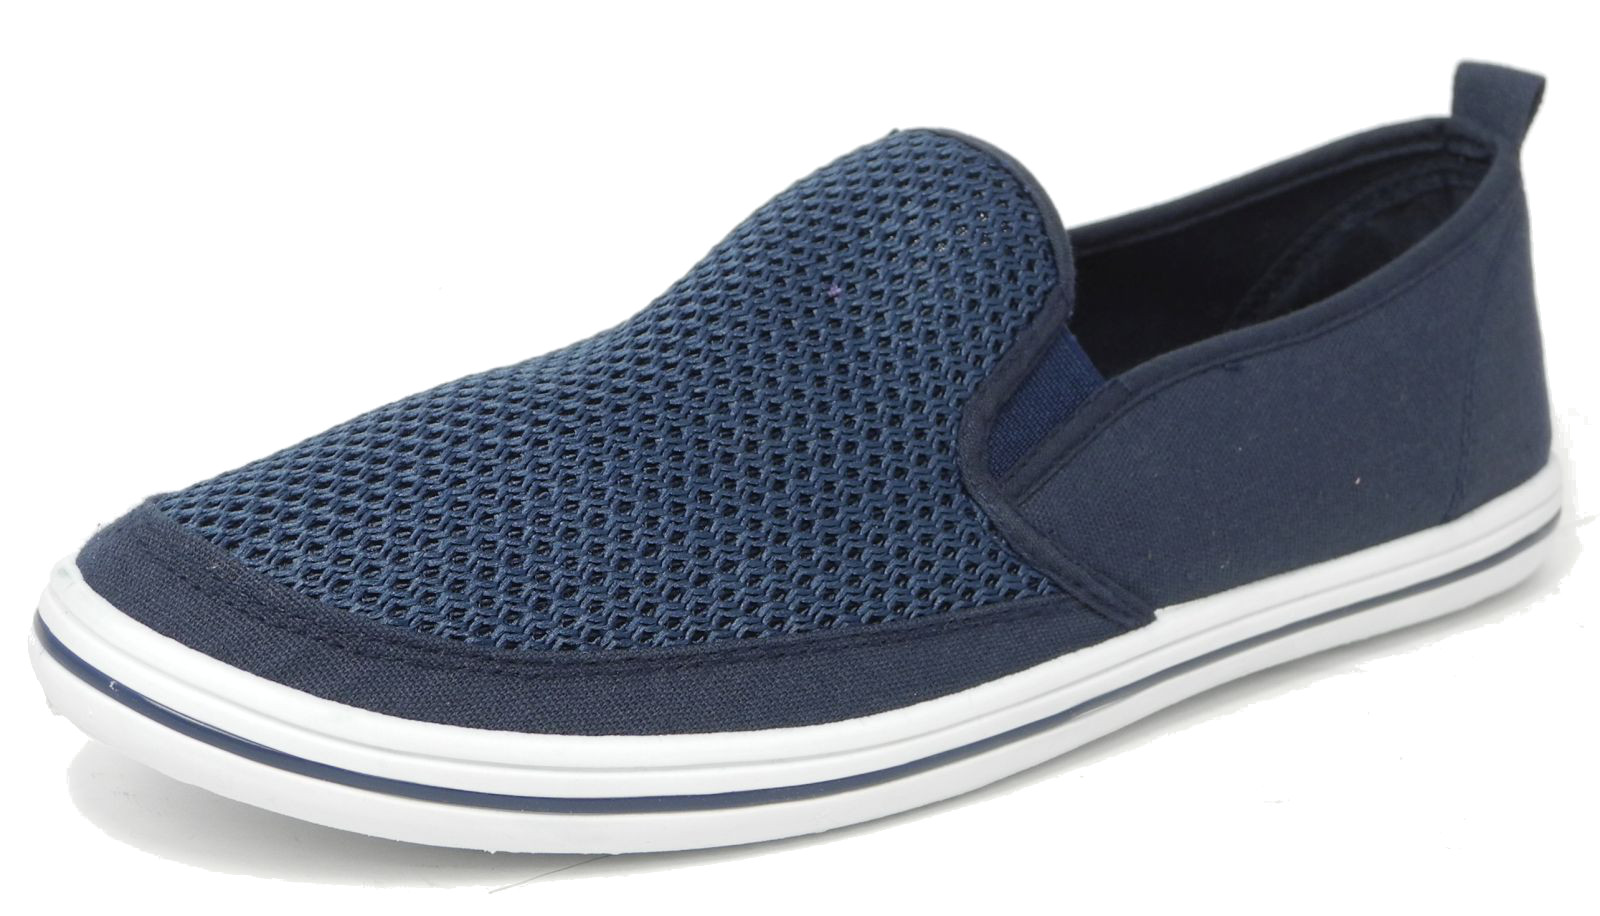 Mens Mesh Canvas Yachting Deck Shoes